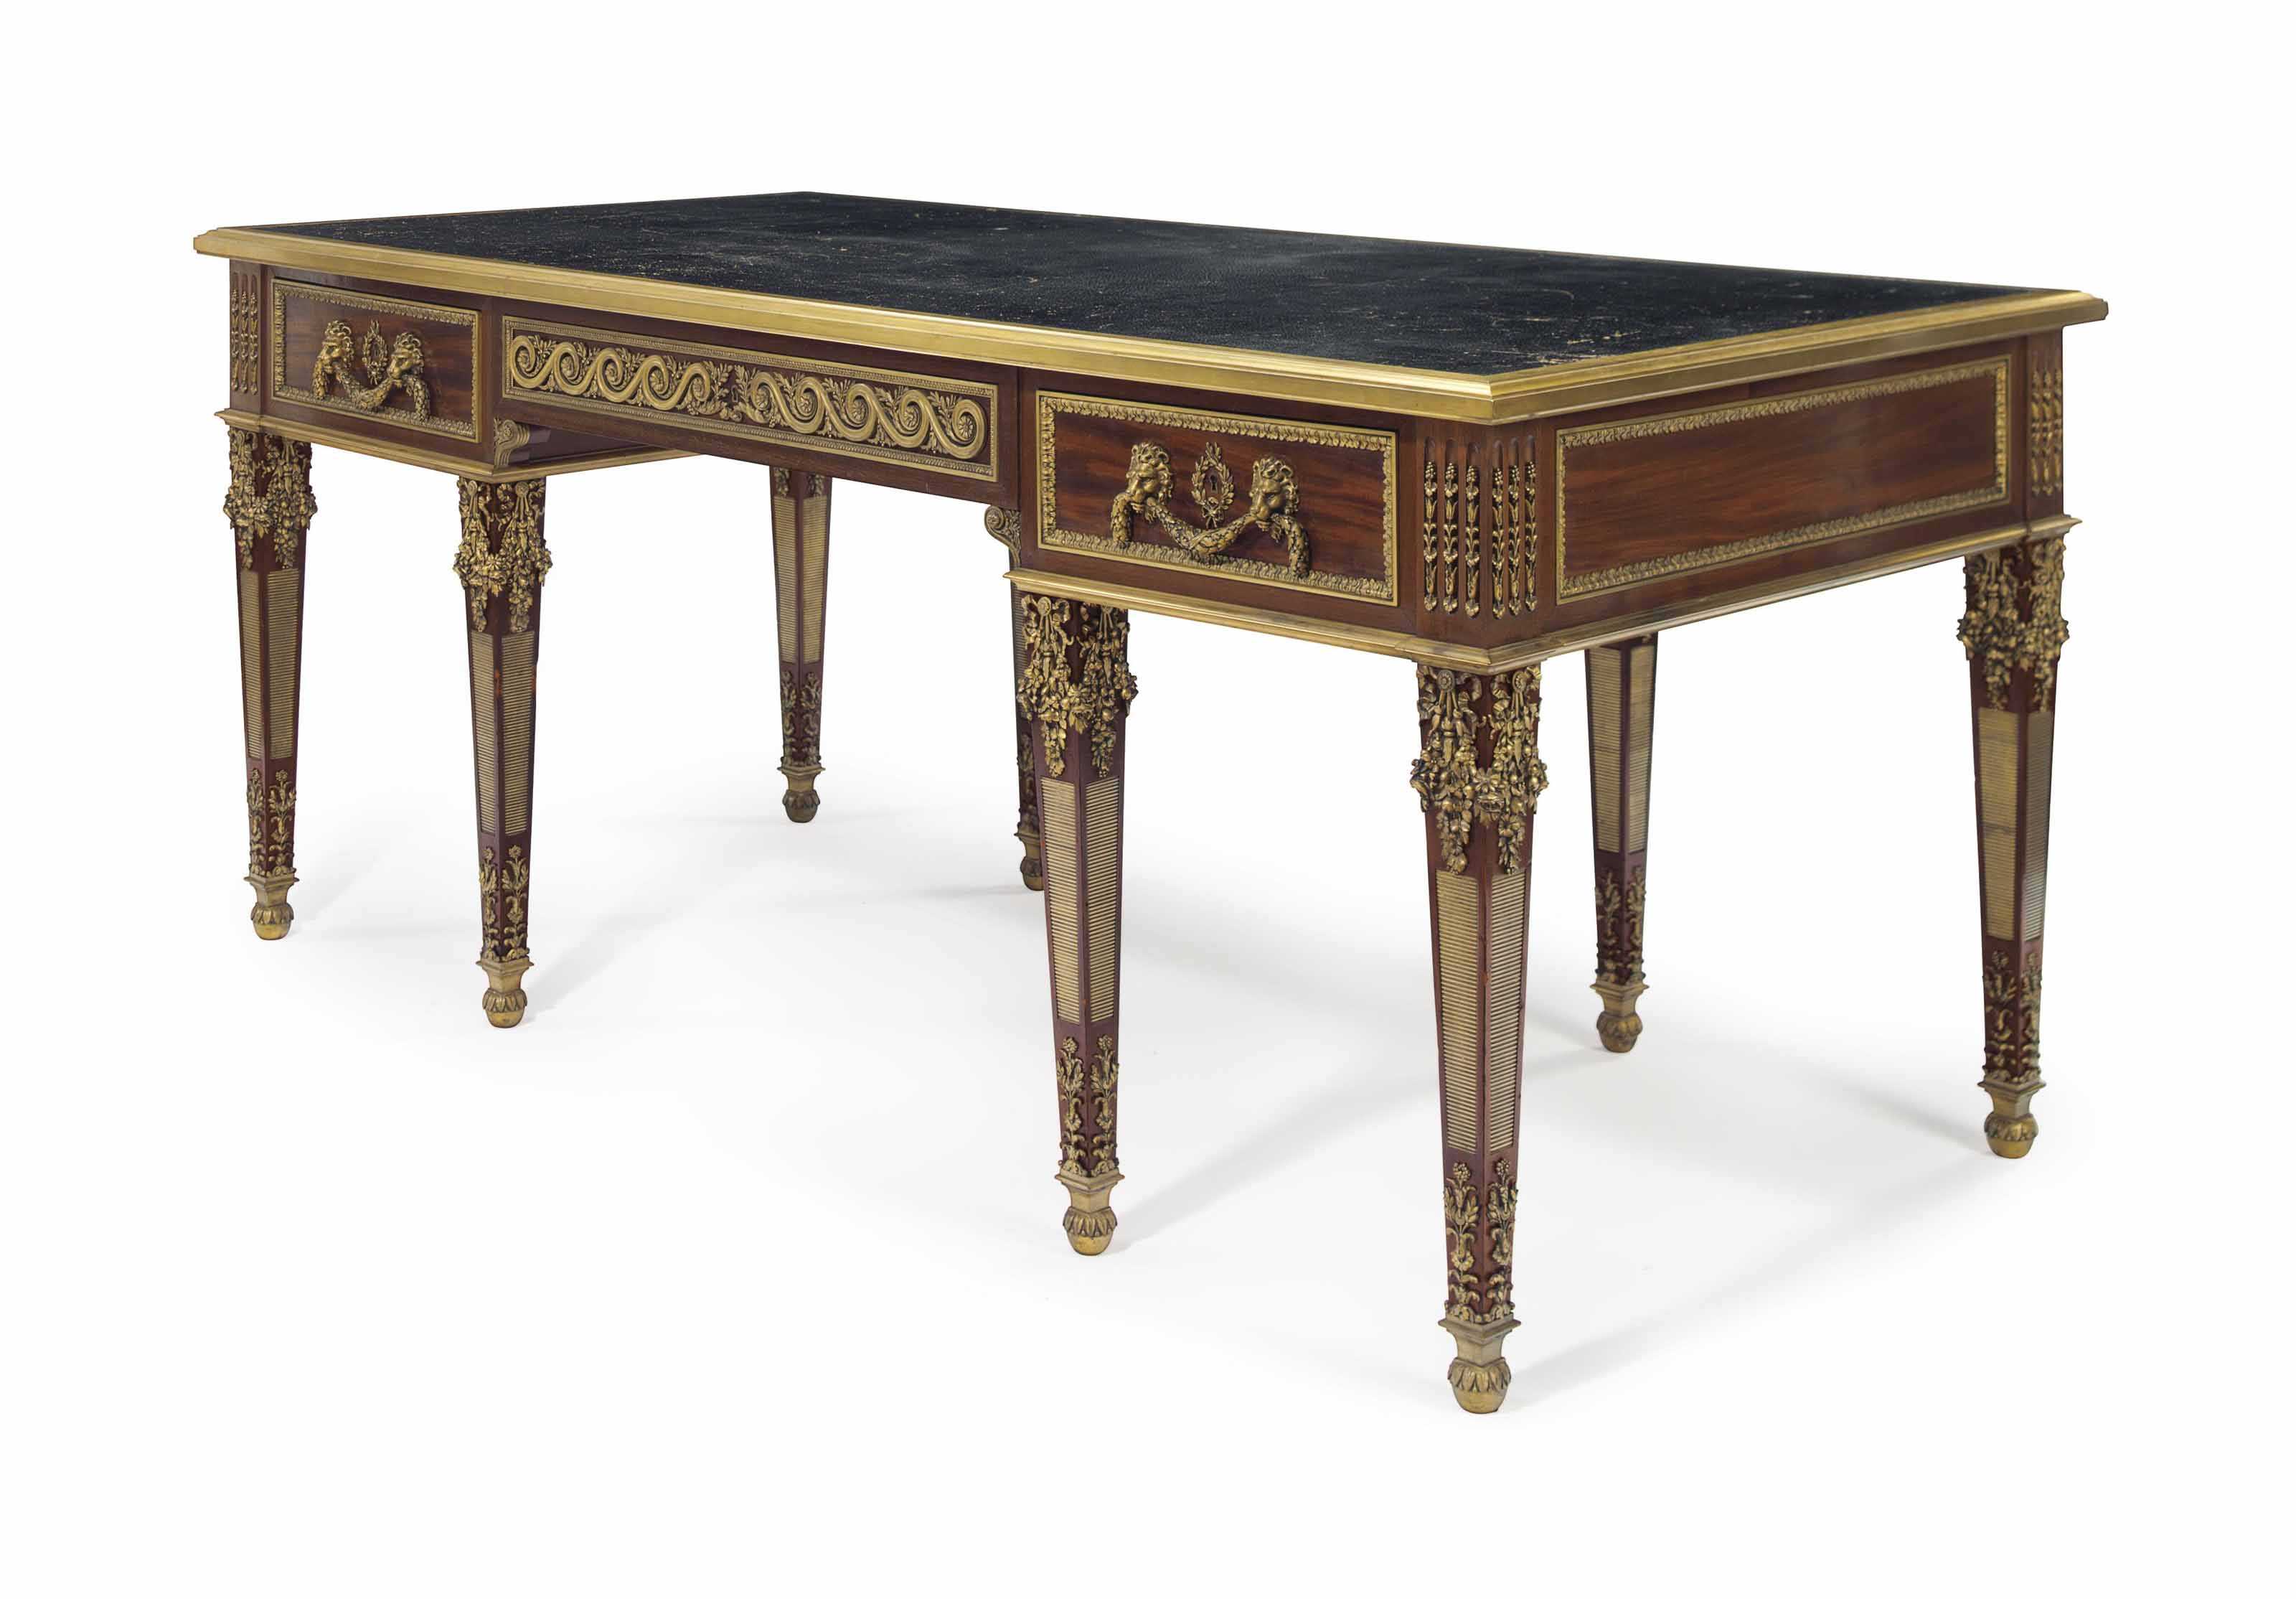 A LARGE FRENCH ORMOLU-MOUNTED MAHOGANY BUREAU PLAT